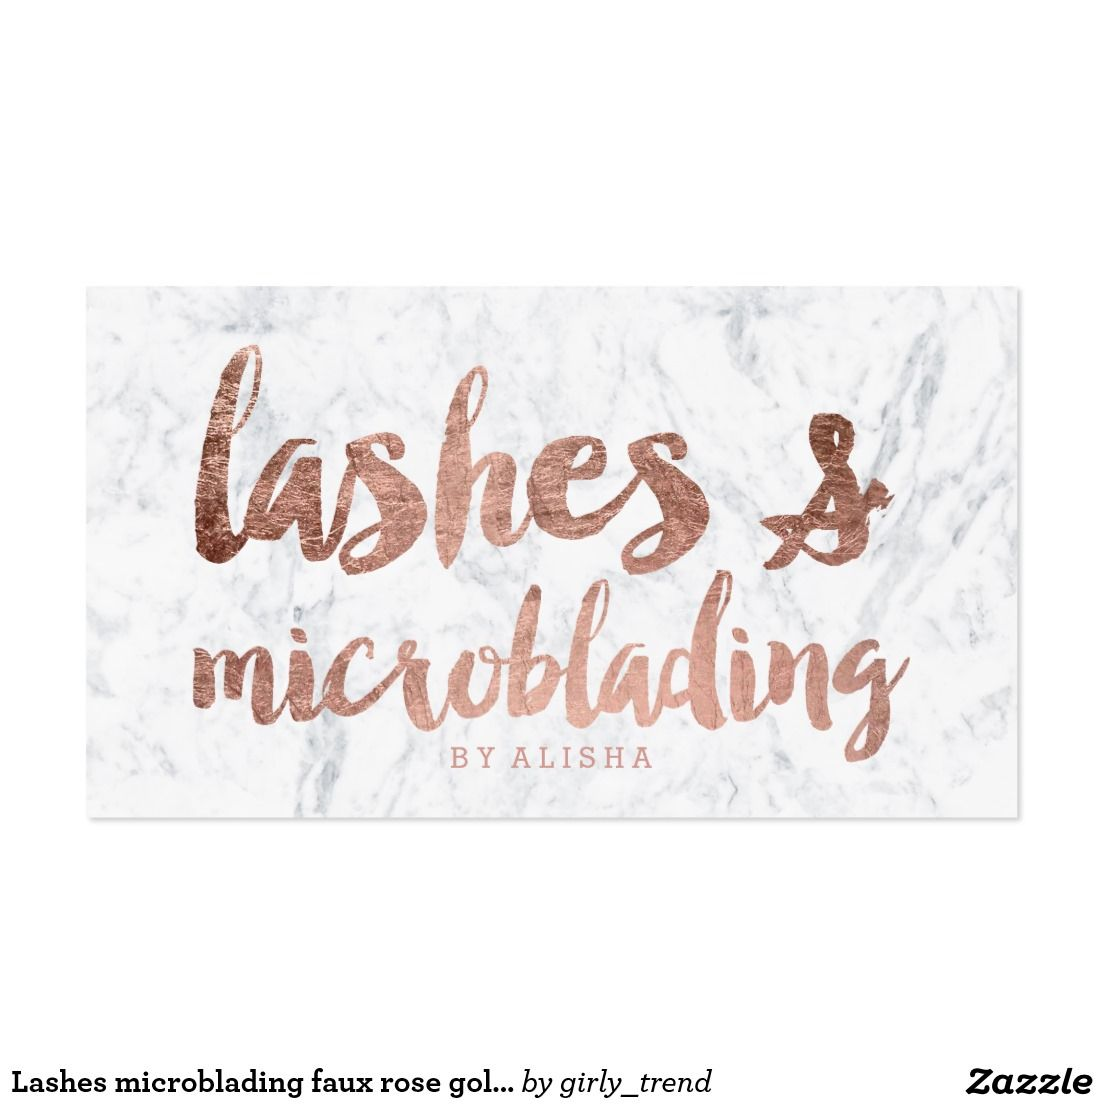 Lashes microblading faux rose gold script marble business card lashes microblading faux rose gold script marble business card magicingreecefo Image collections